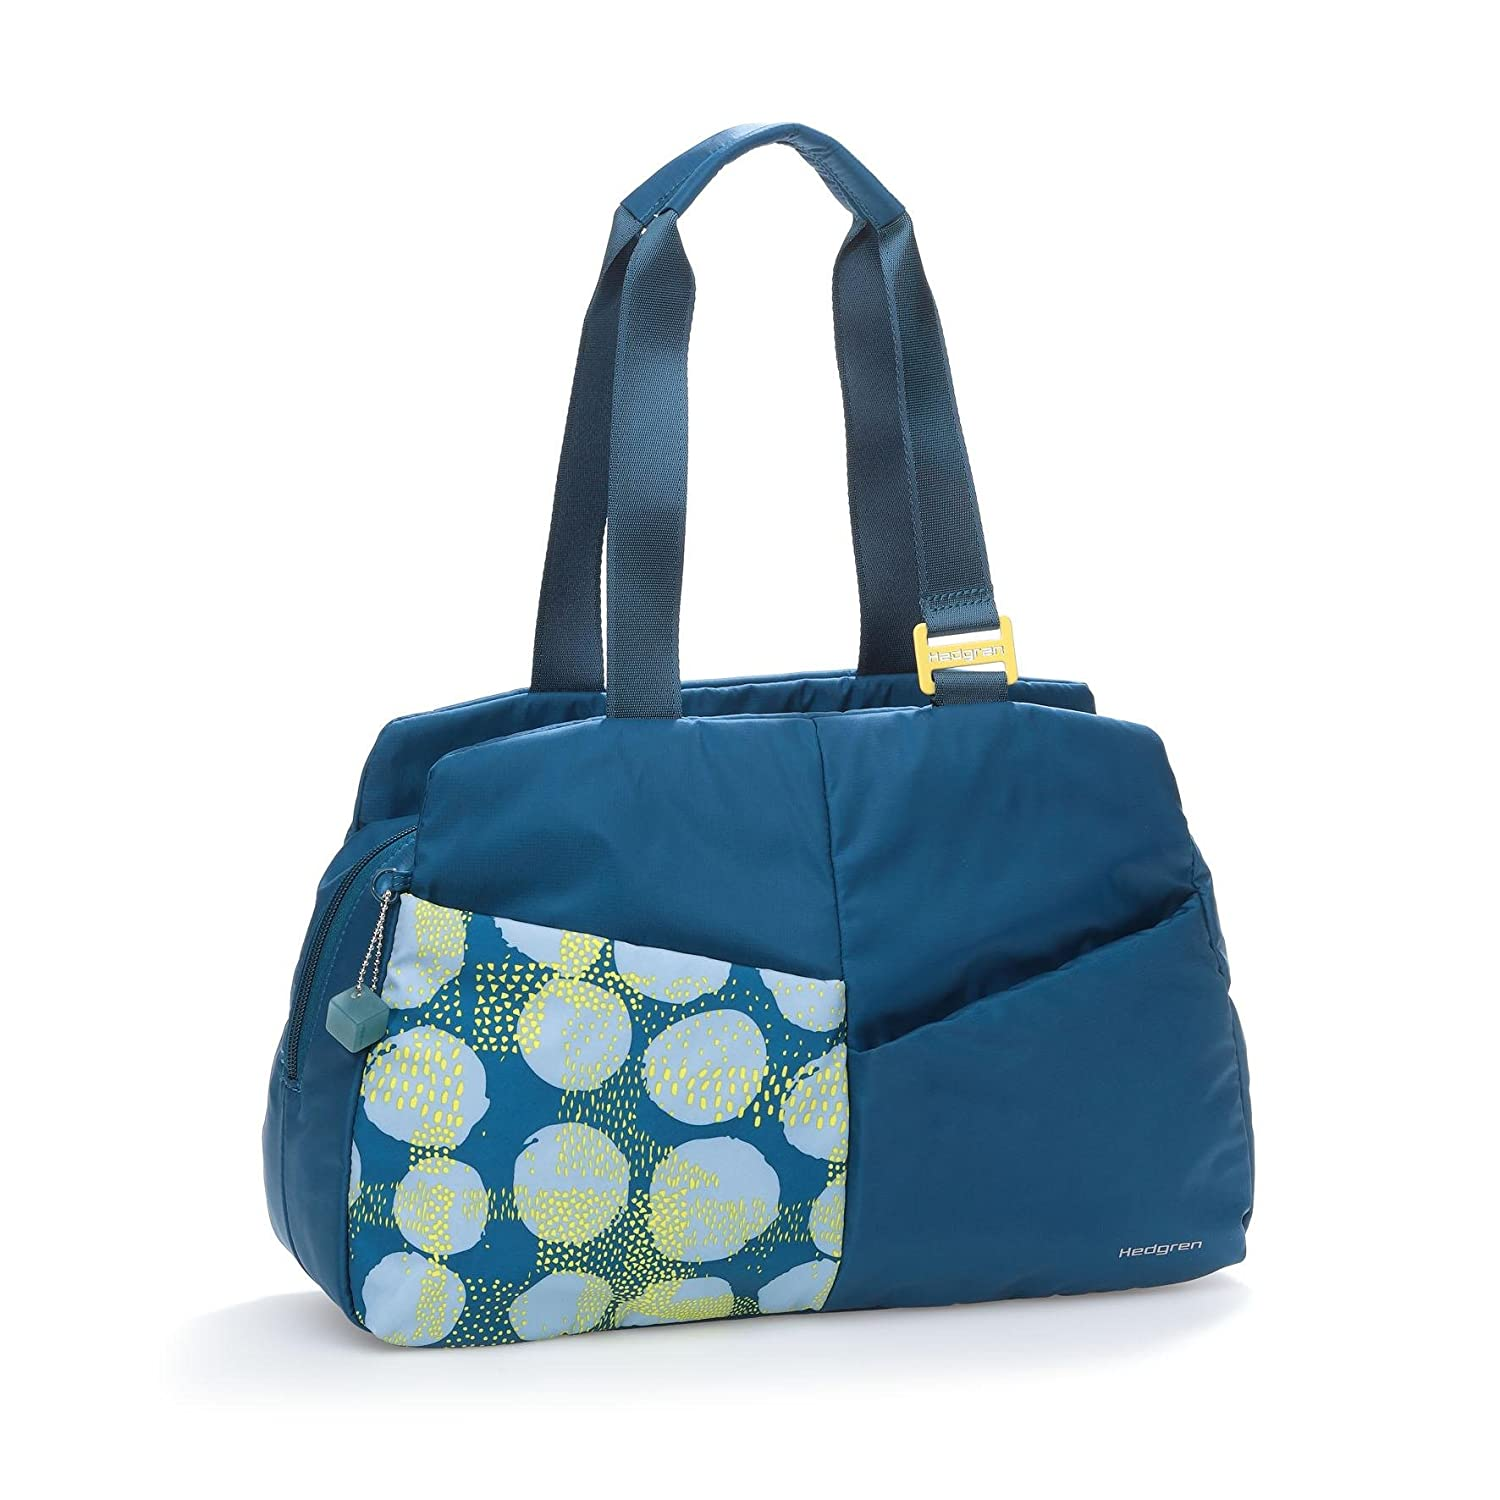 Hedgren Logica Handbag, Gym Tote Bag with Detachable Zipper Pouch and Shoulder Strap, 16.1 x 5.3 x 10.6 Inches, Womens, Spots Blue 16.1 x 5.3 x 10.6 Inches HPLT03-751-03